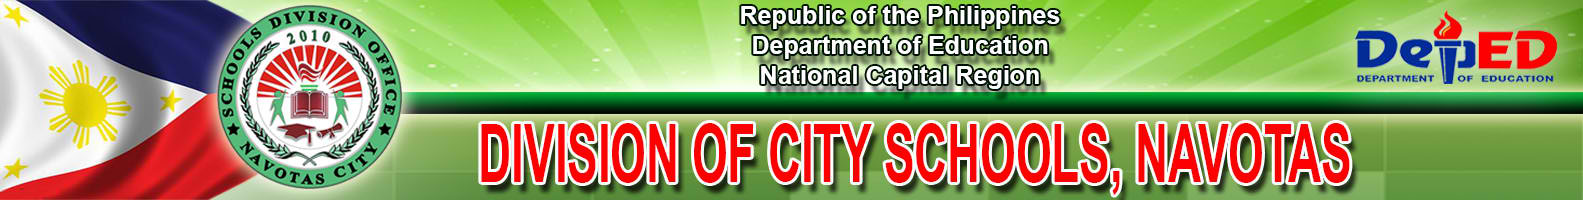 Division of City Schools Navotas